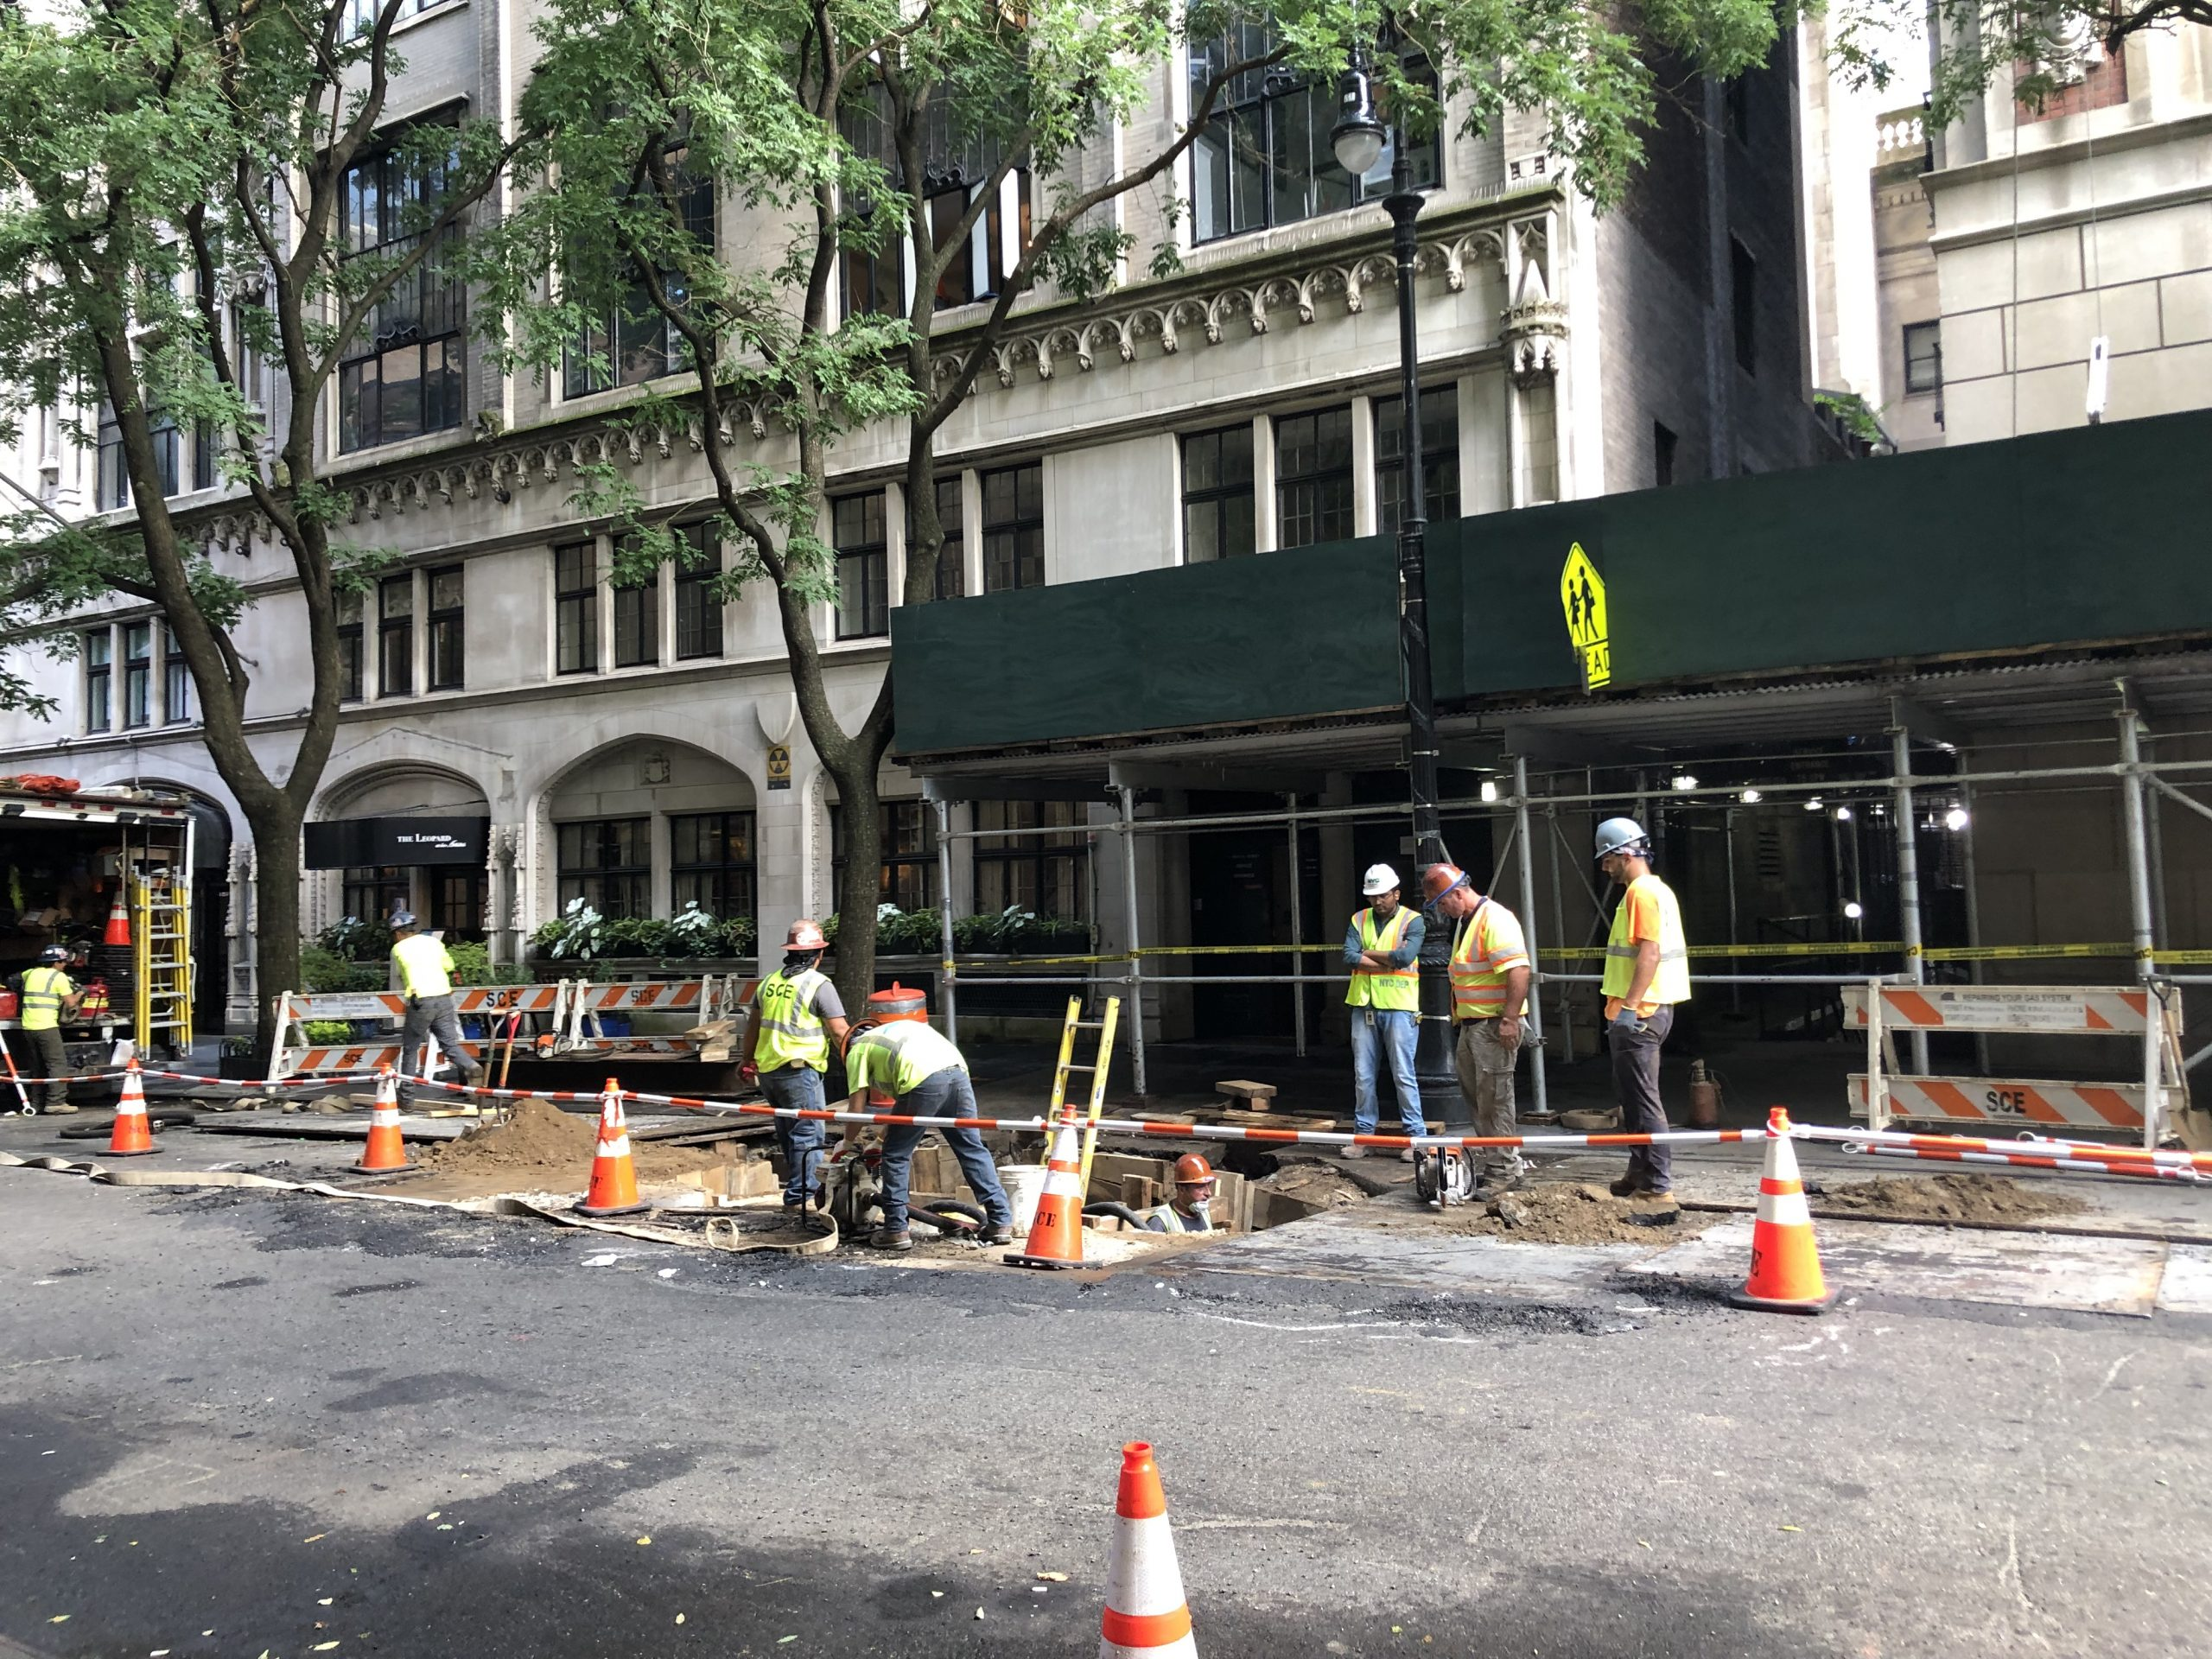 excavation work in NYC streets